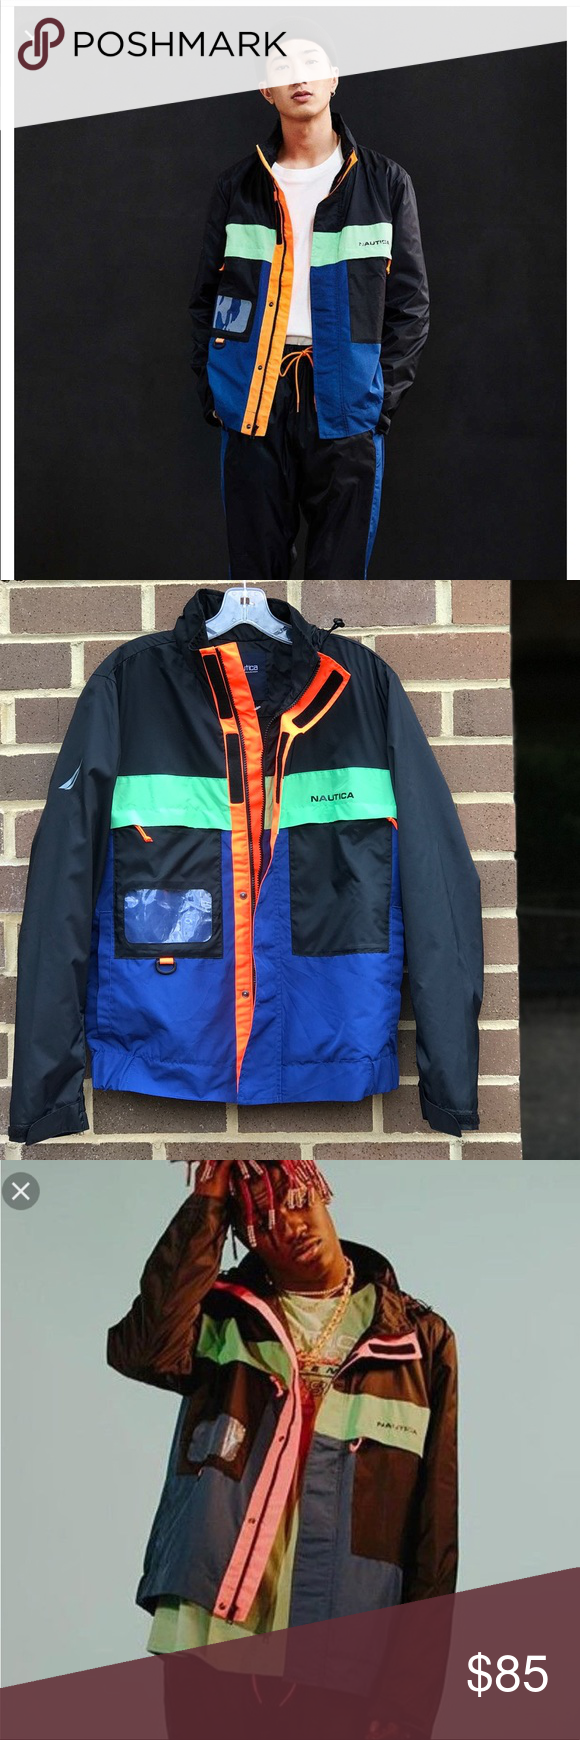 6hrsale 2xhp Uo Nautica Vintage C Jacket Urban Outfitters Jacket Jackets Clothes Design